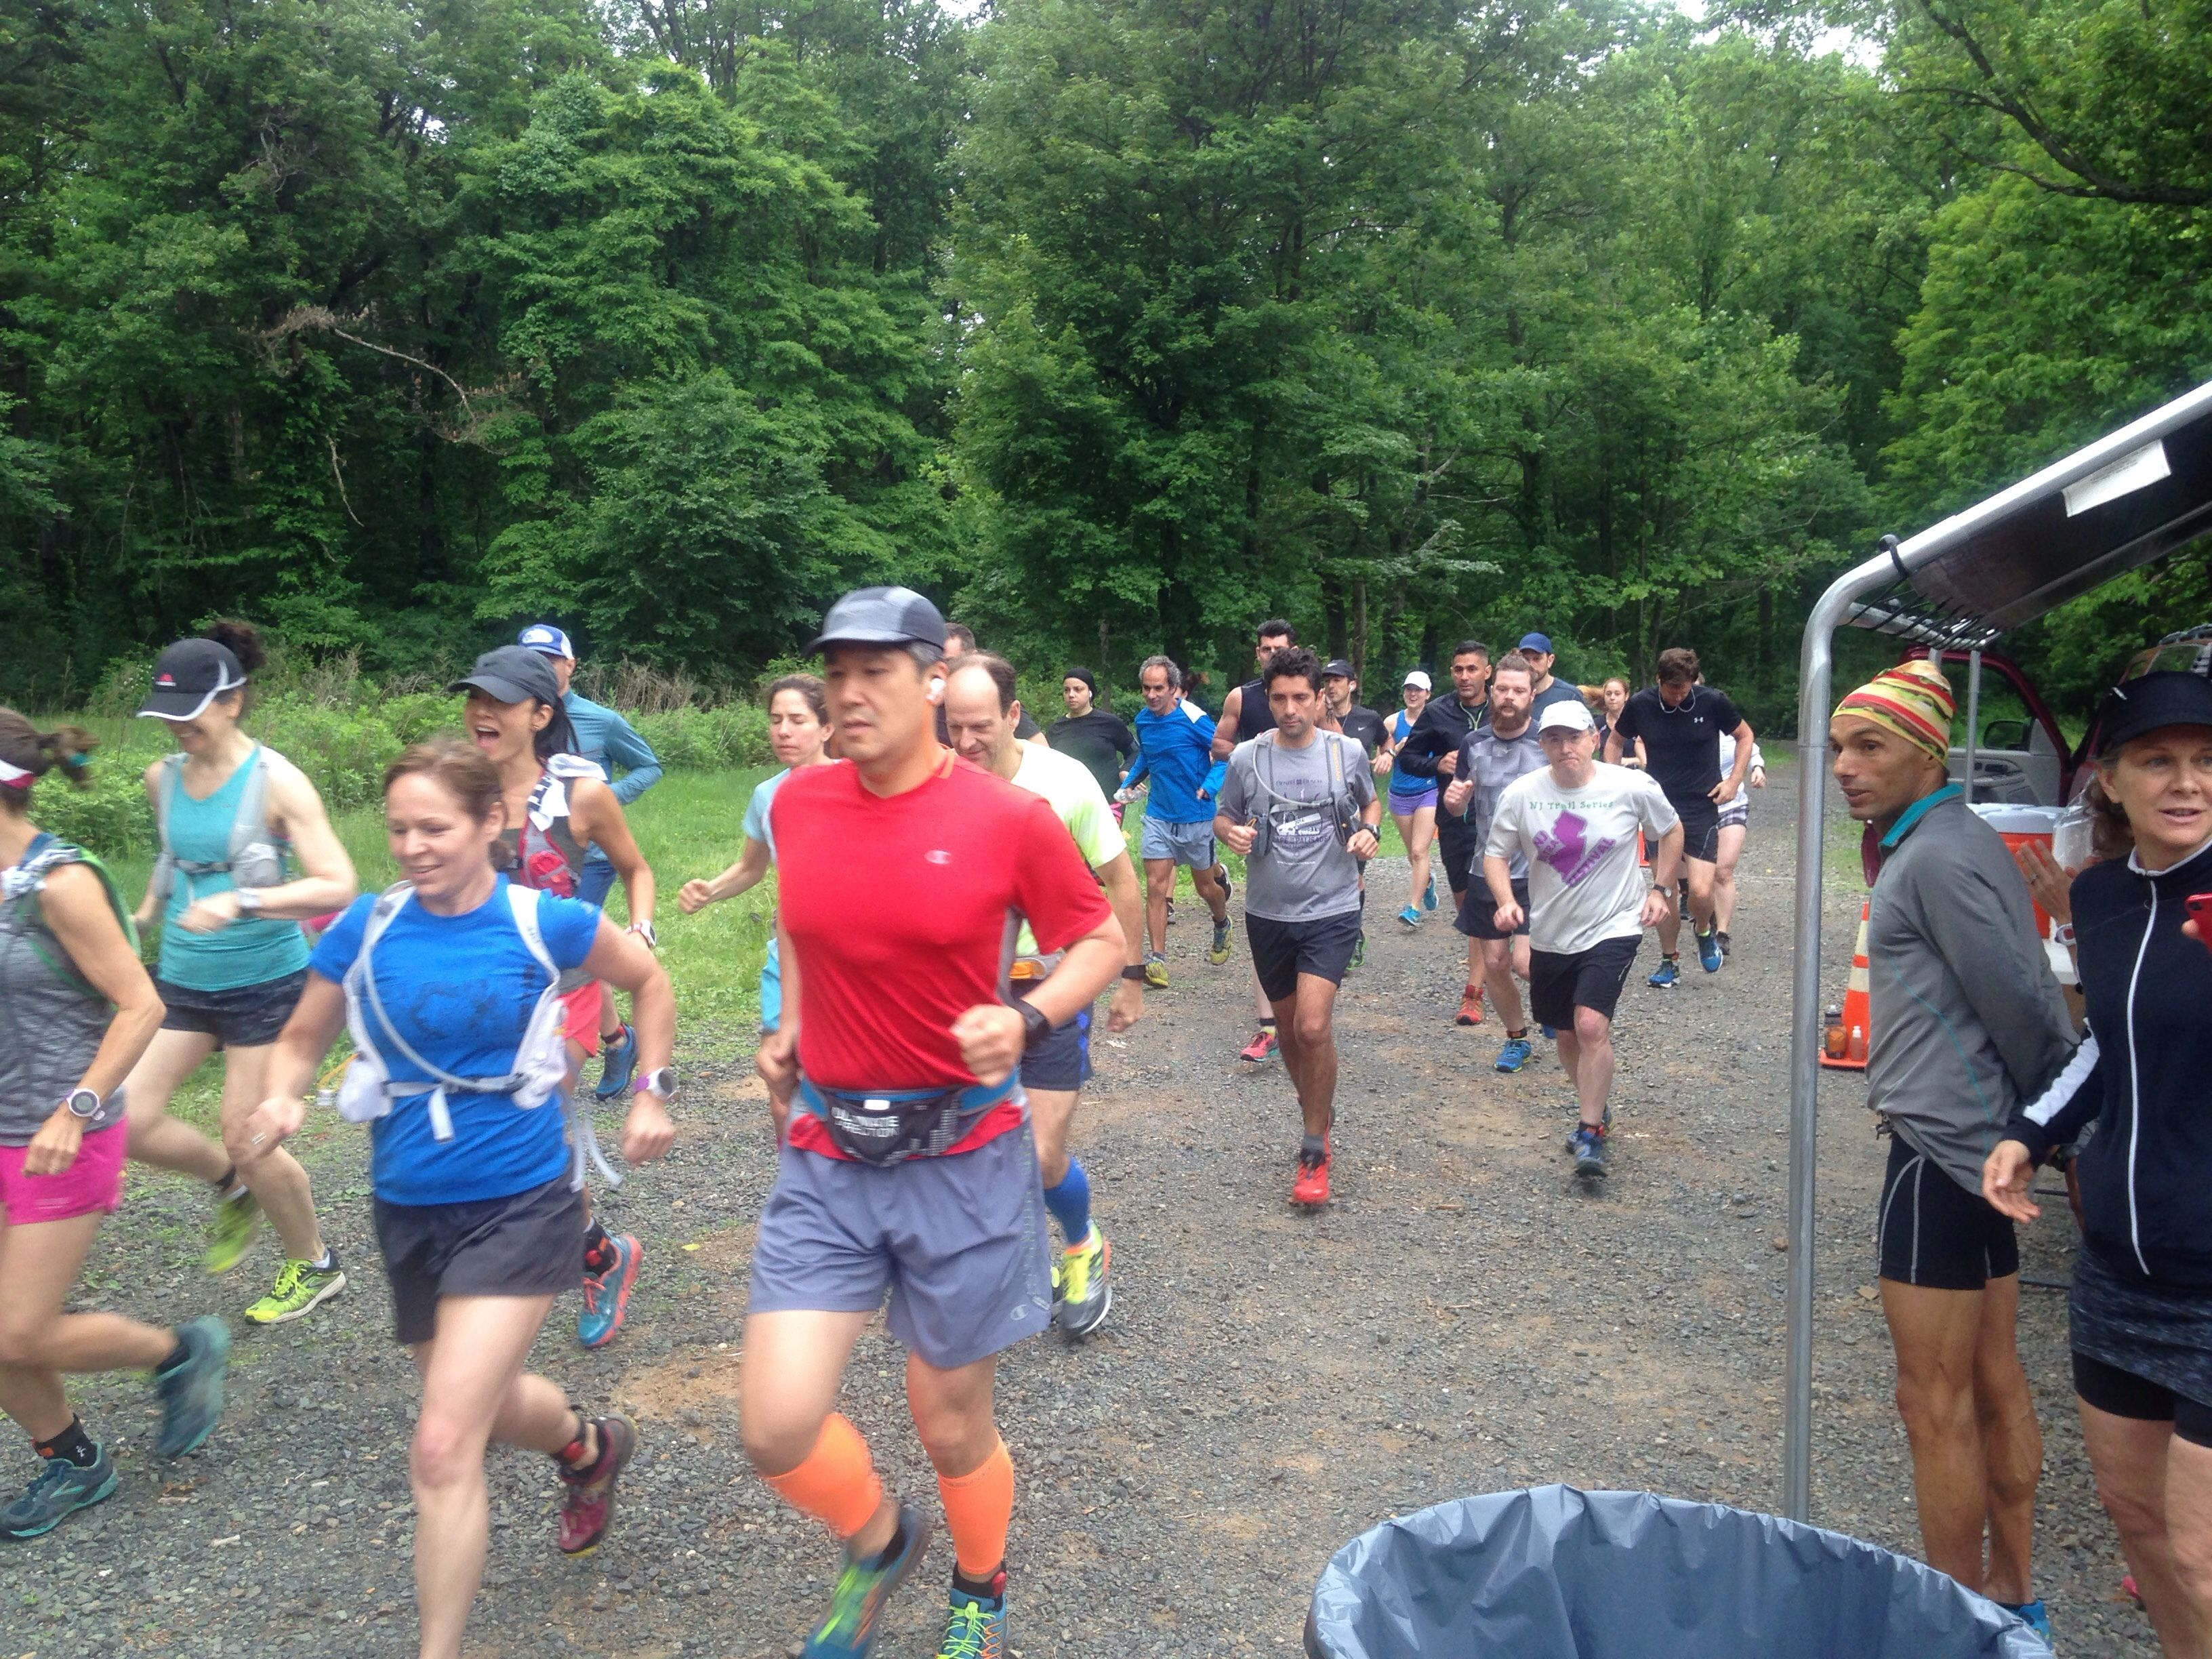 The North Jersey Road Runners